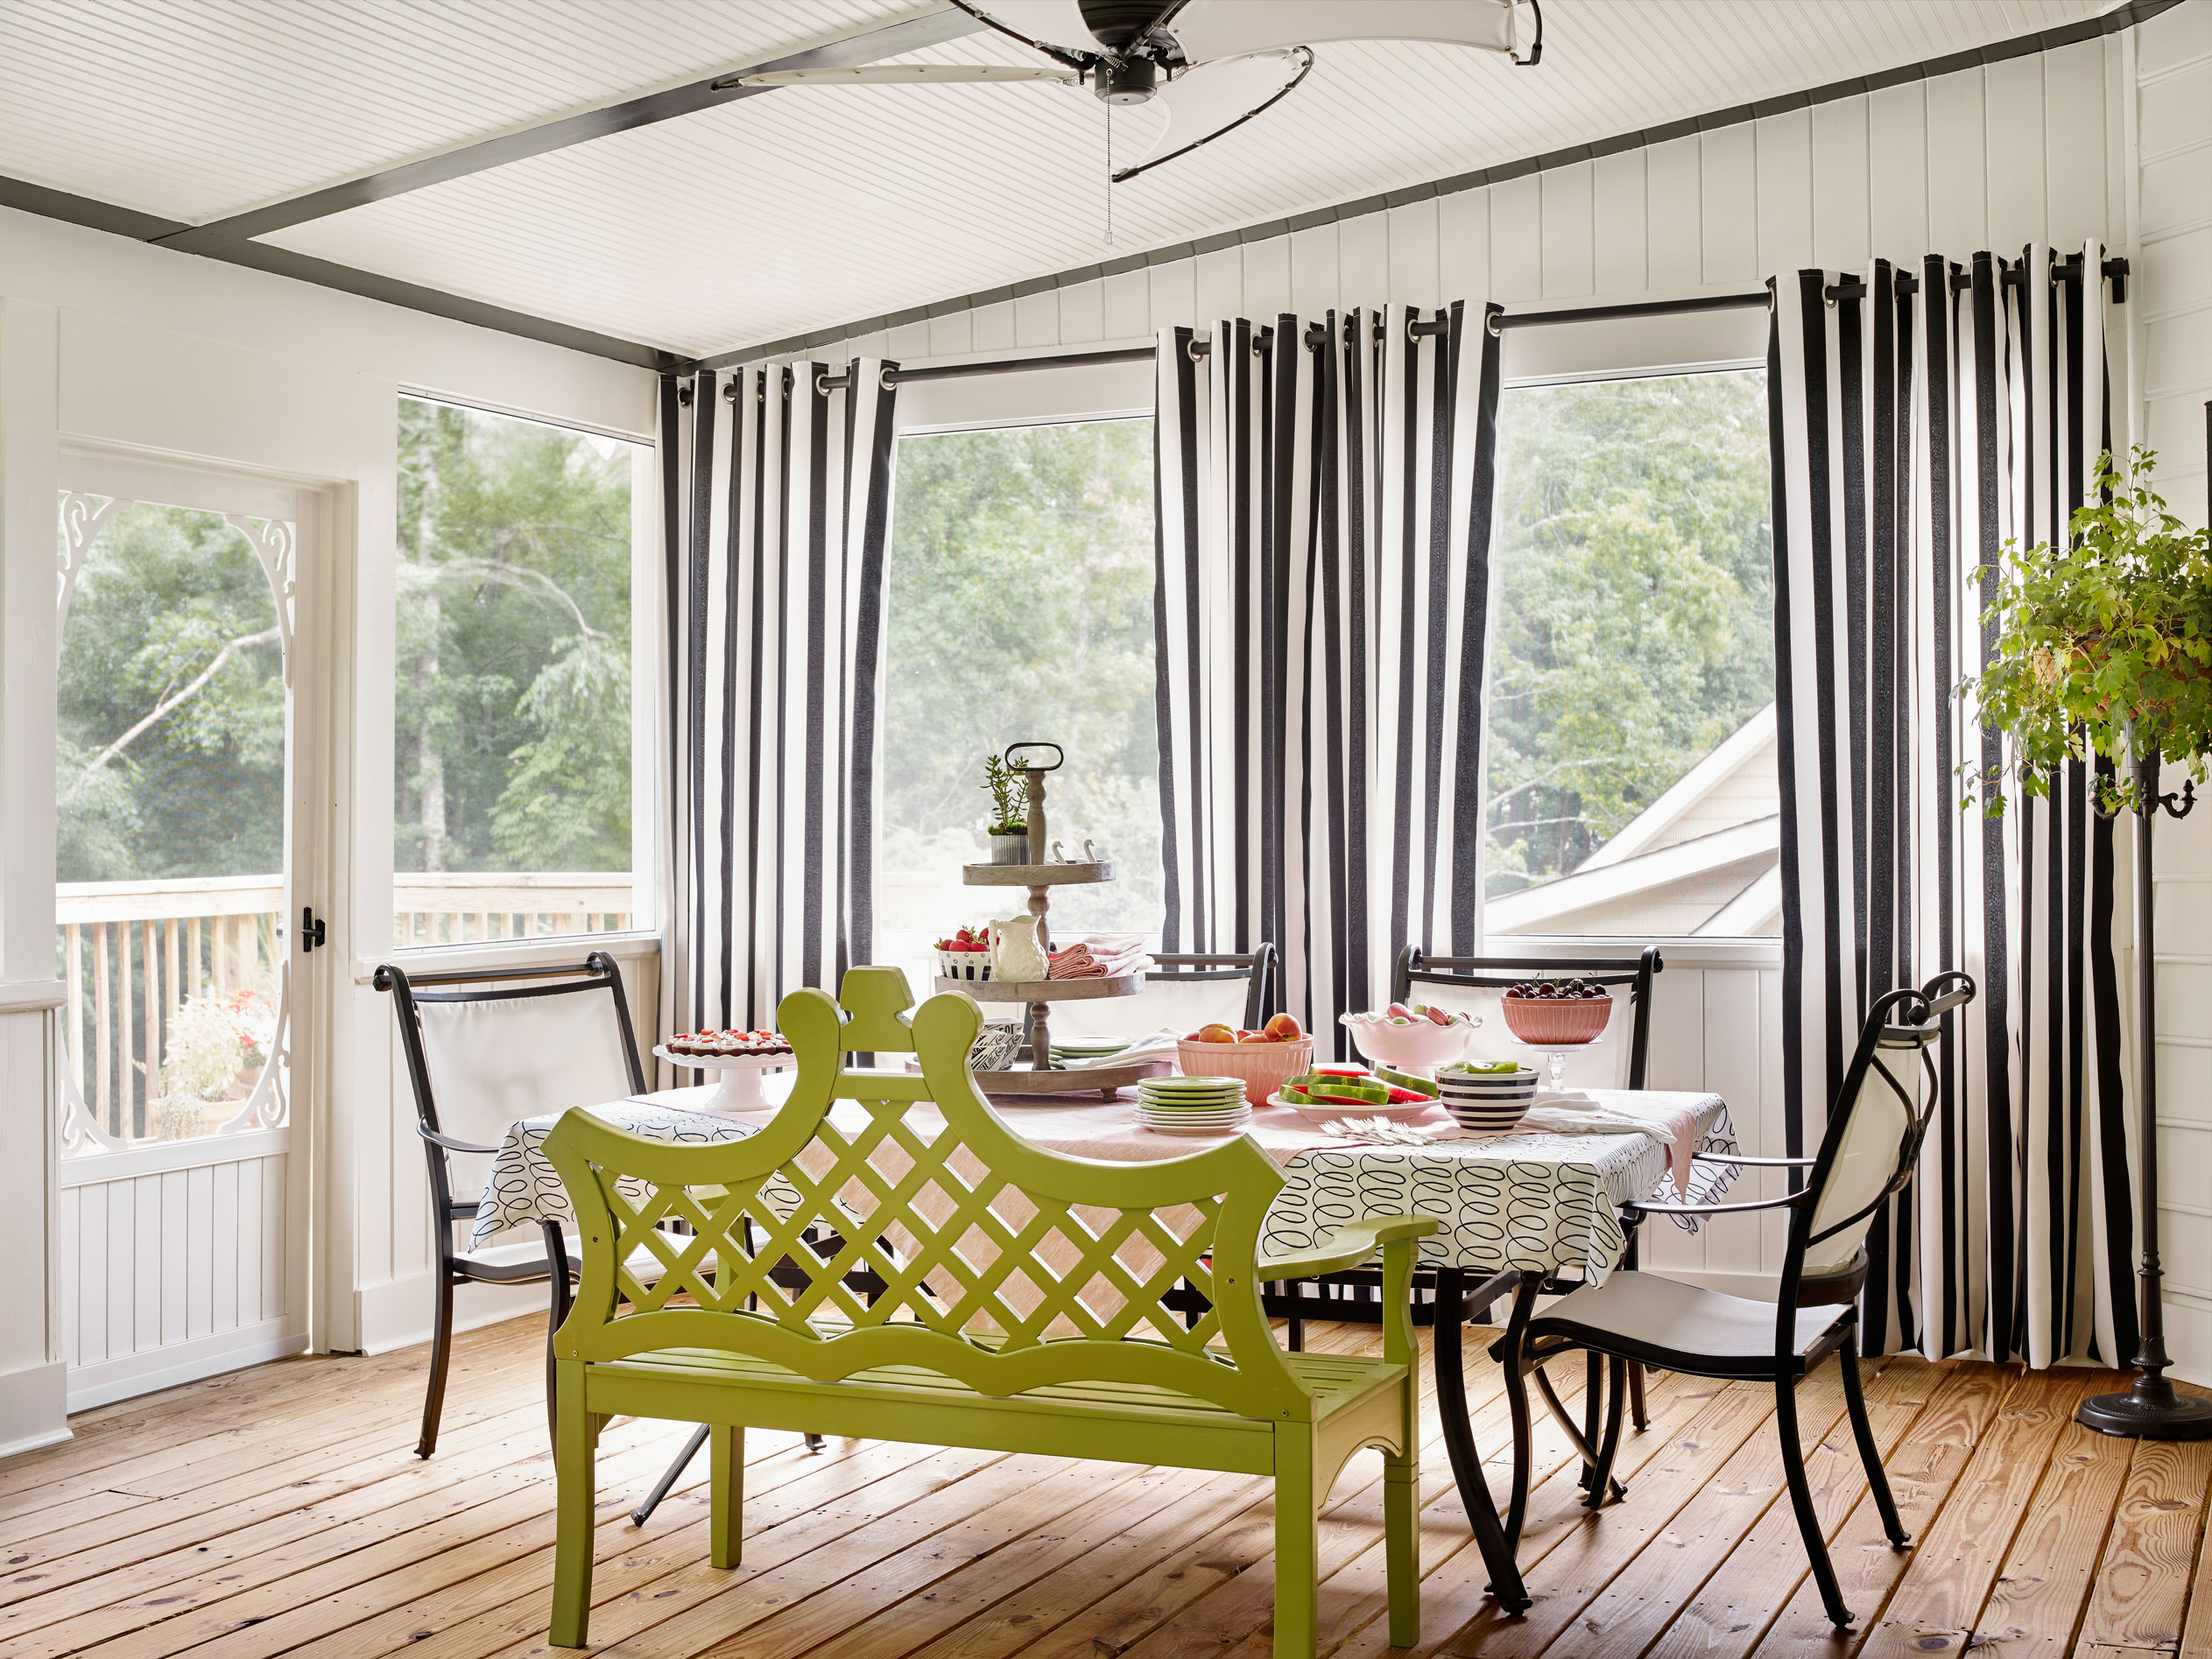 Screened-in Porch with garden bench seating